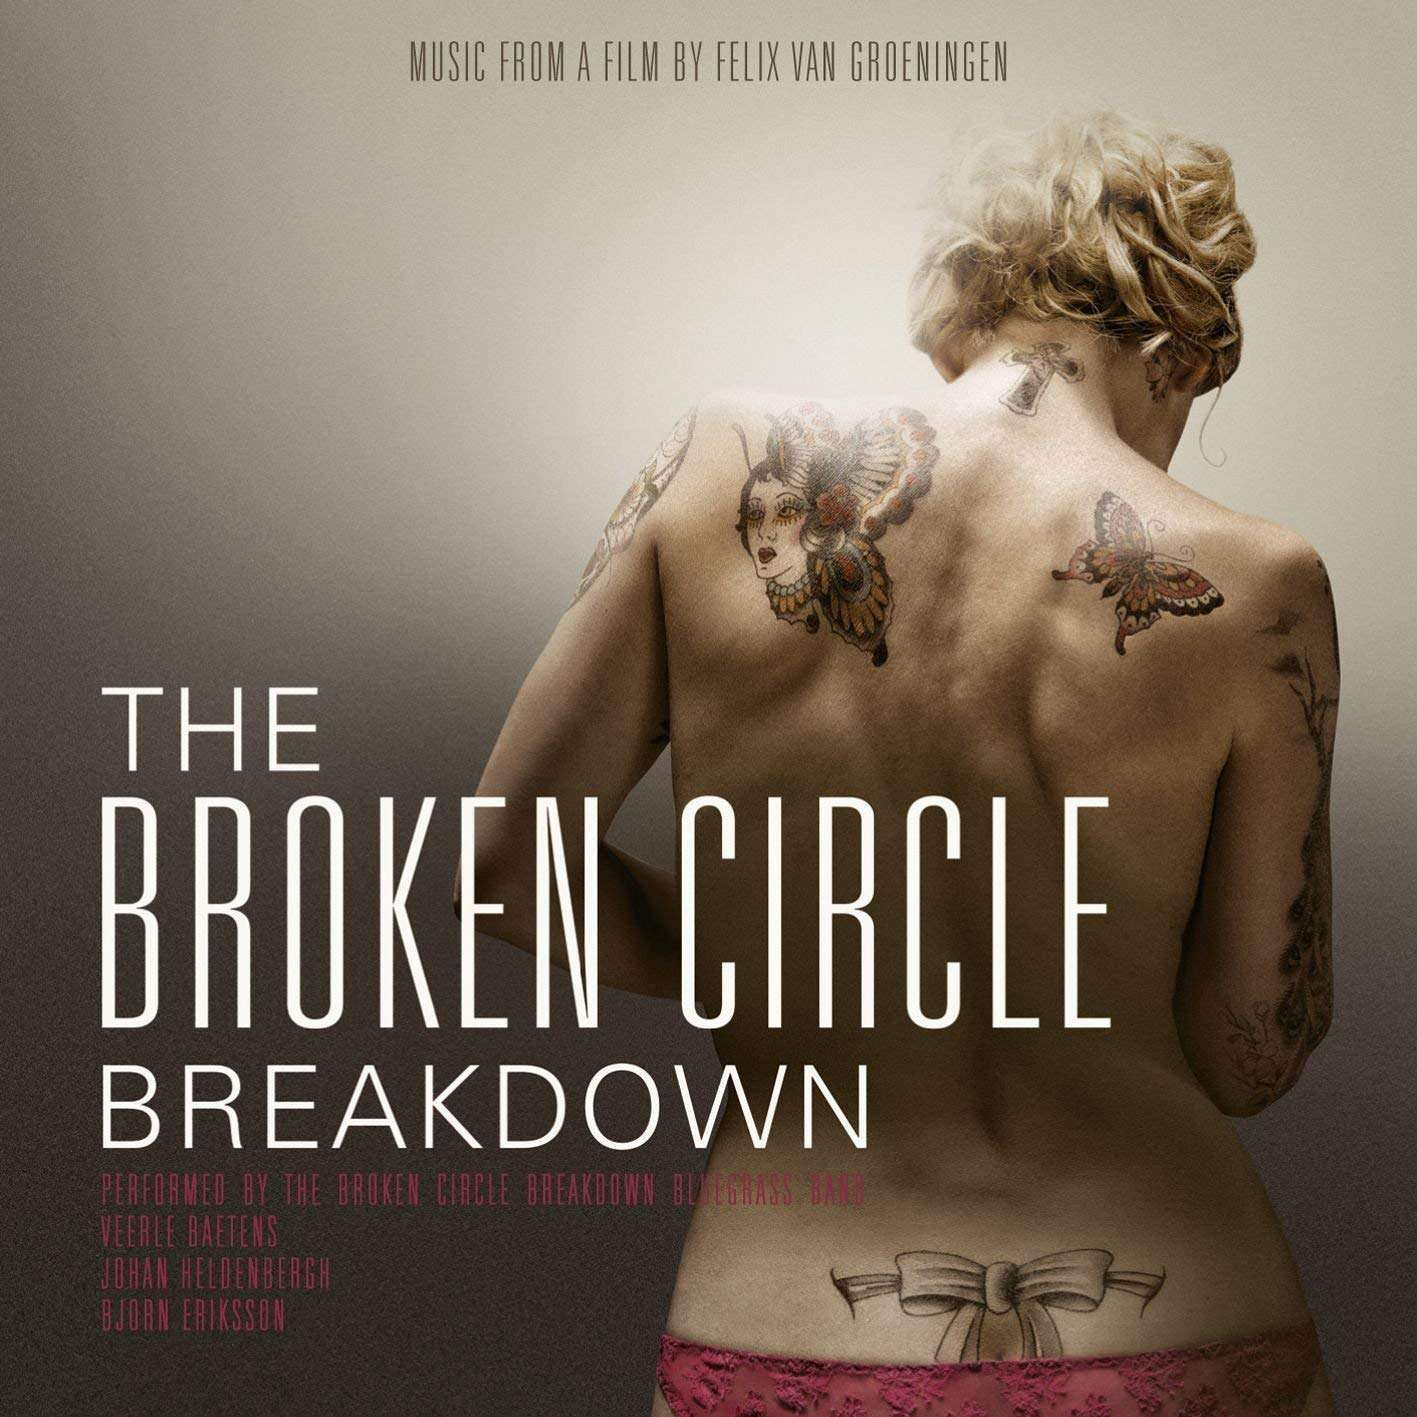 Broken Circle Breakdown Soundtrack, 2012